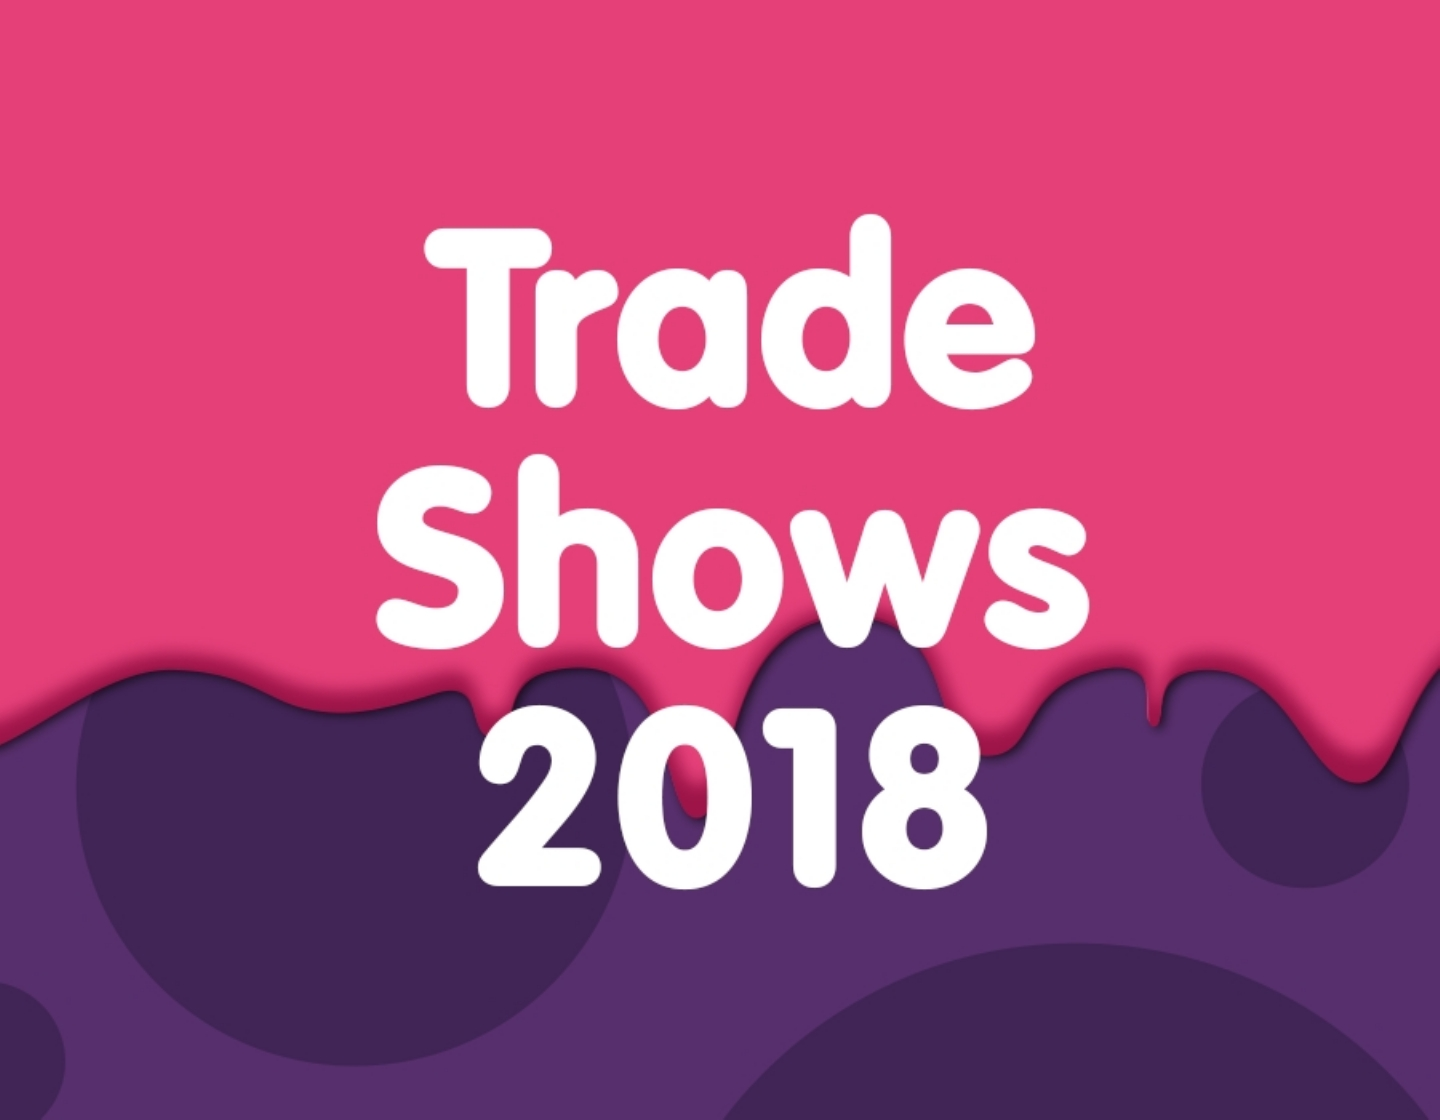 Meet Keycraft at Toy Trade Shows in 2018